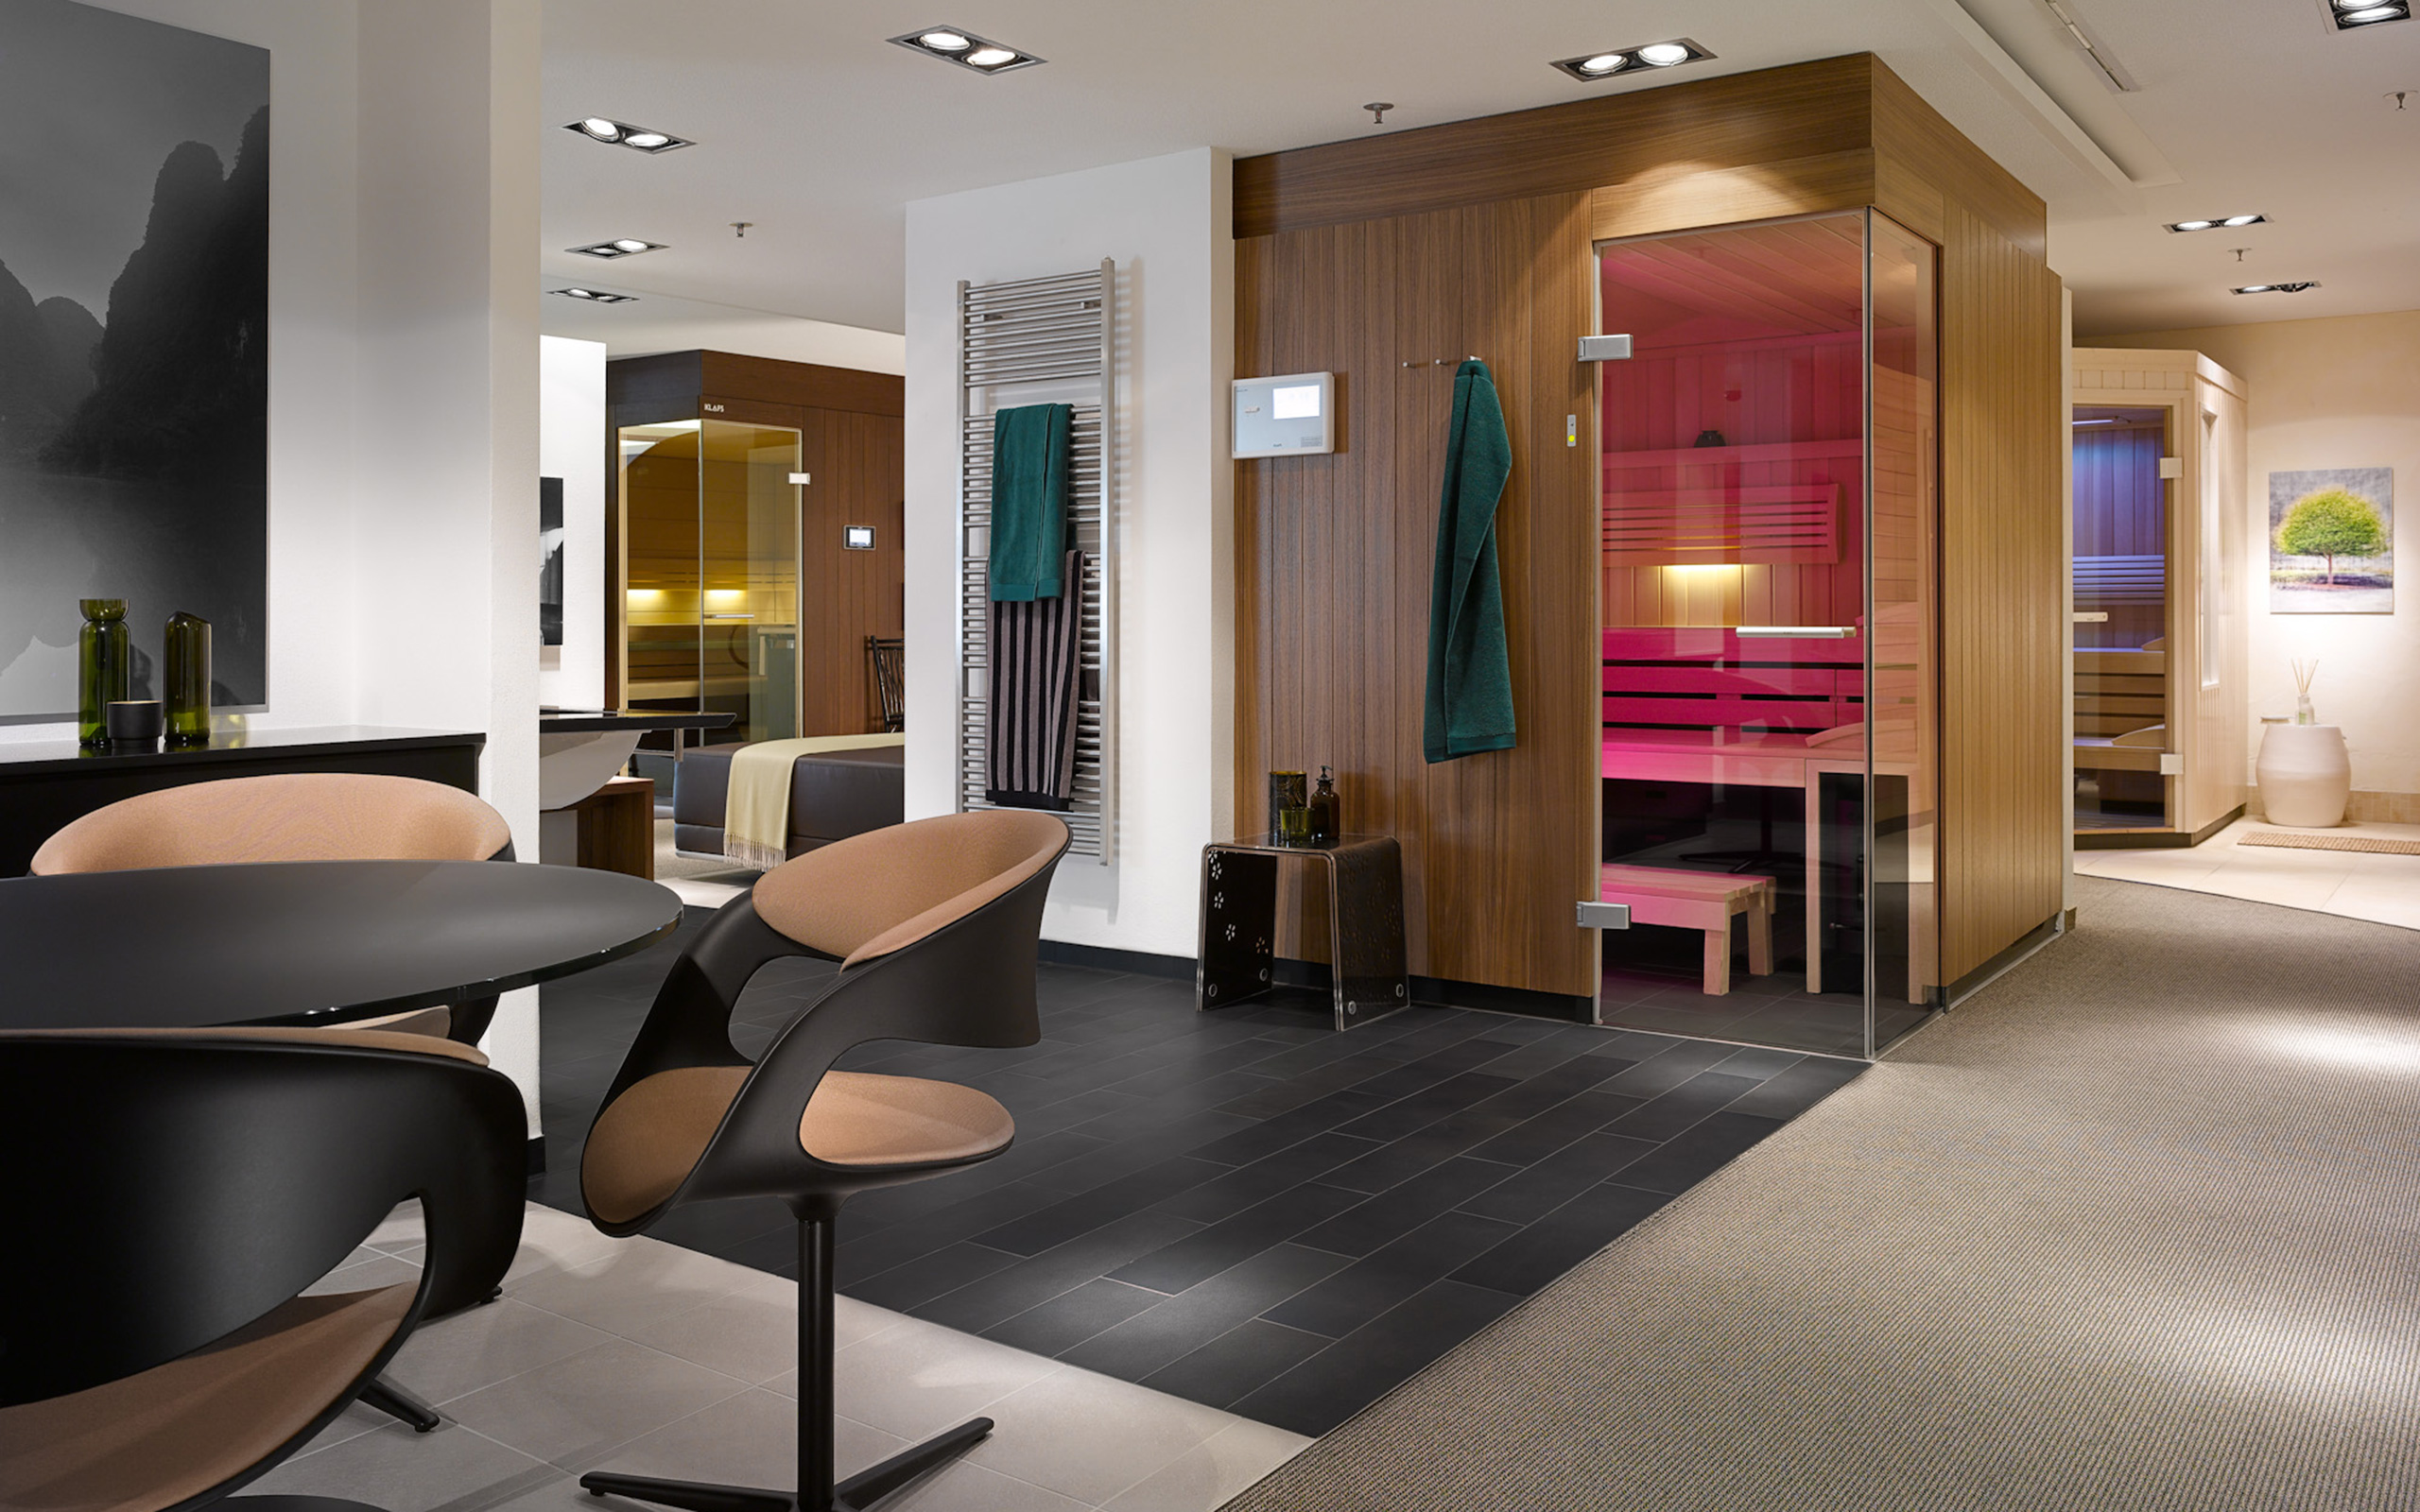 sauna ausstellung schw bisch hall in house of sauna spa. Black Bedroom Furniture Sets. Home Design Ideas